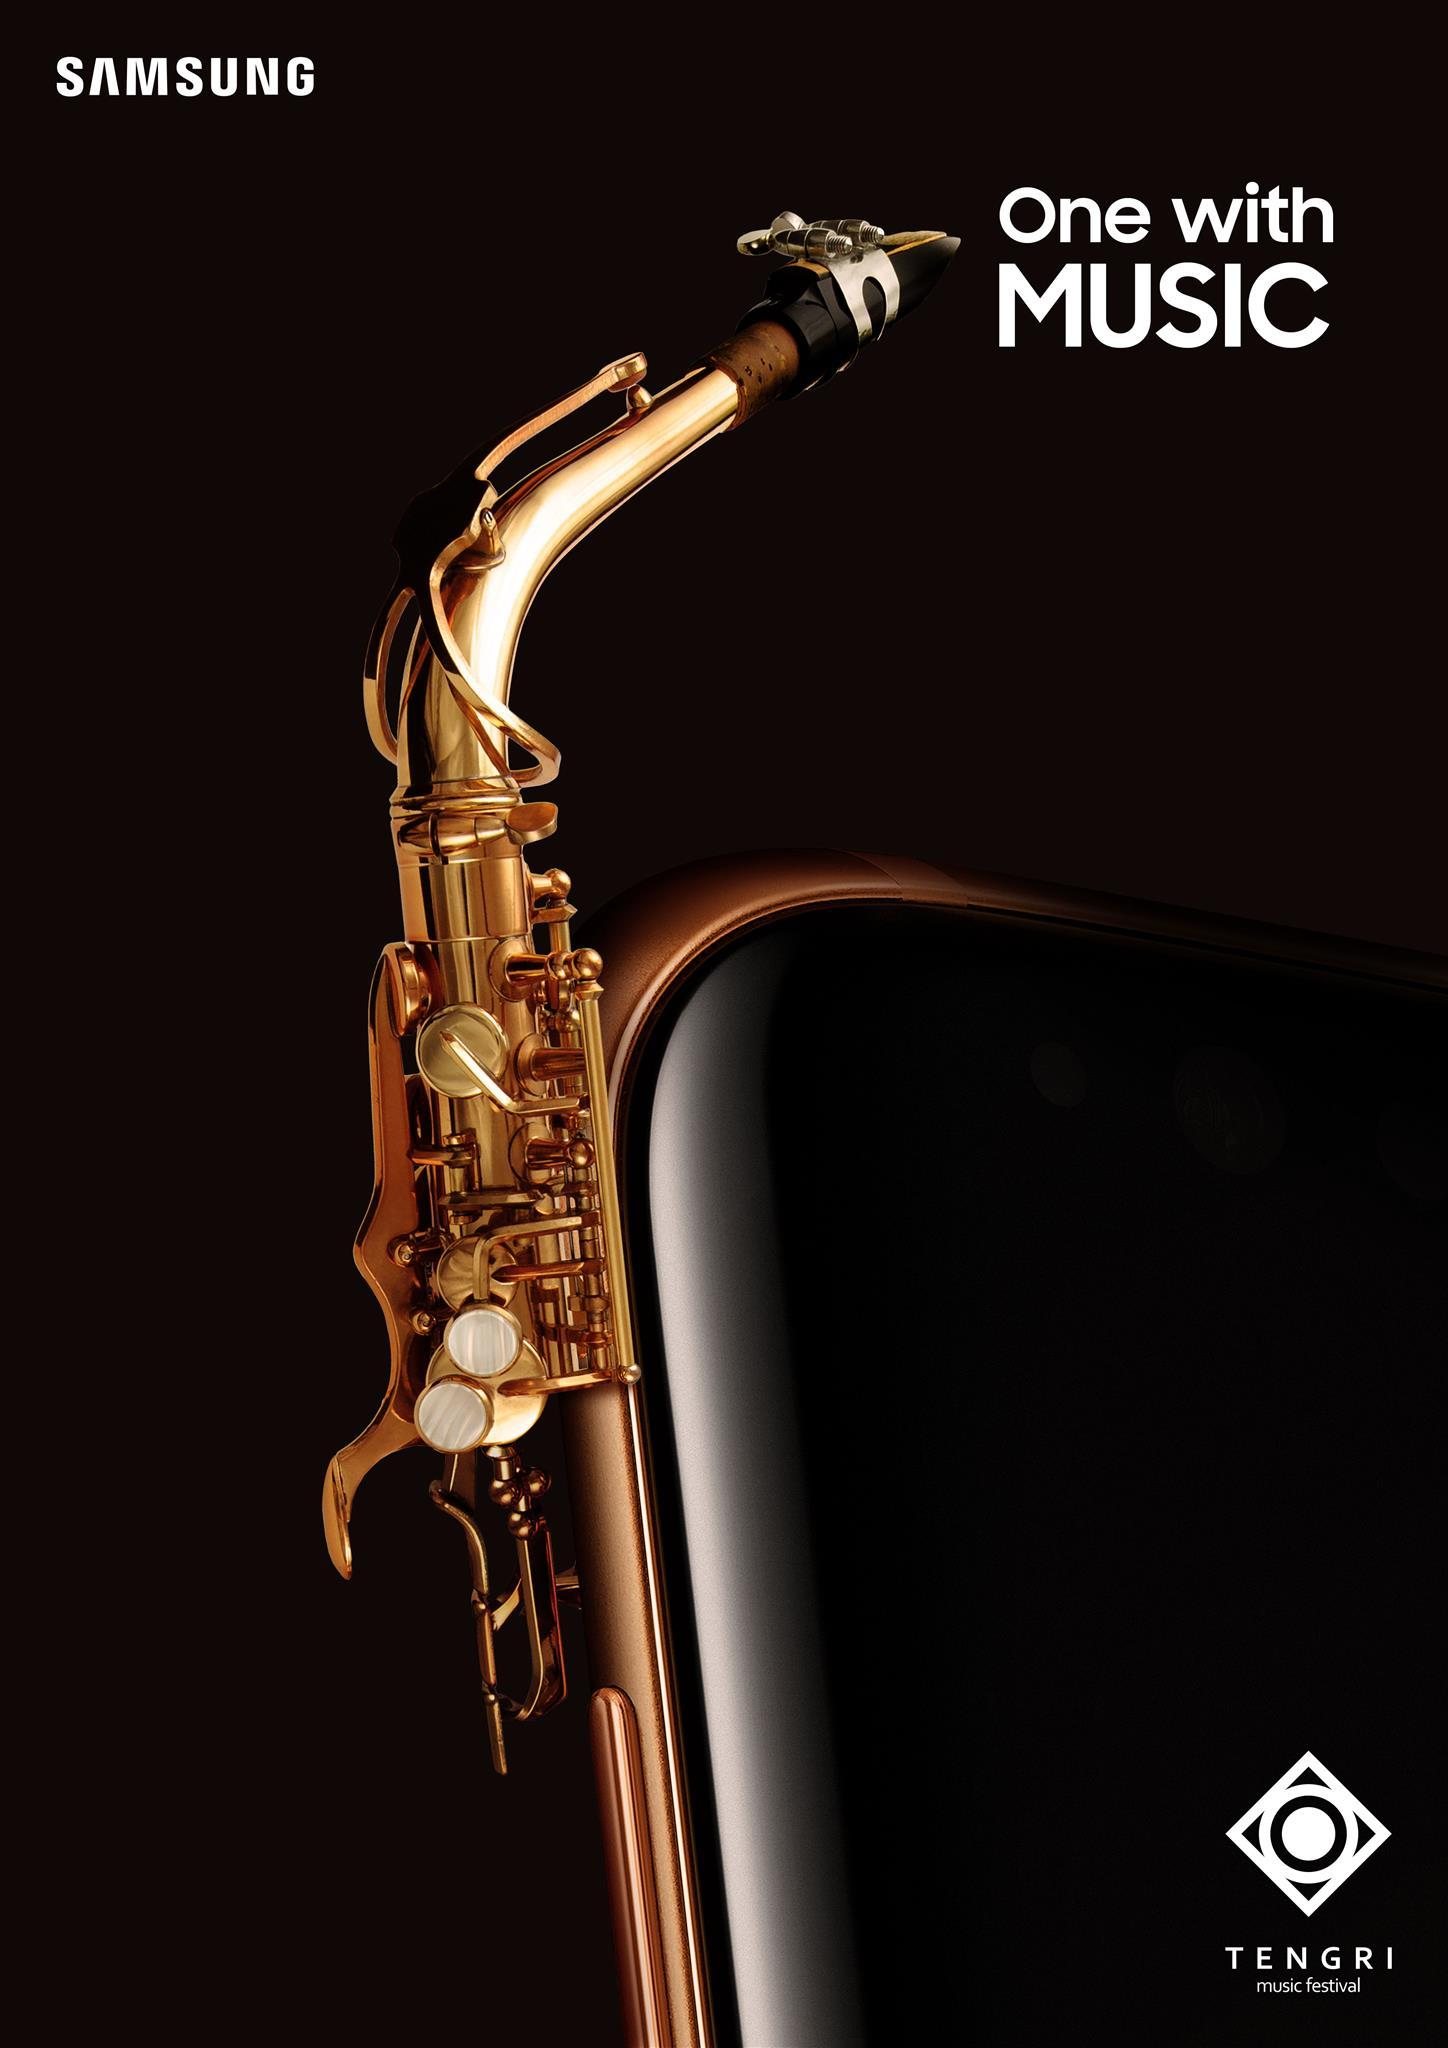 Samsung Print Ad - Musical Instruments, 3